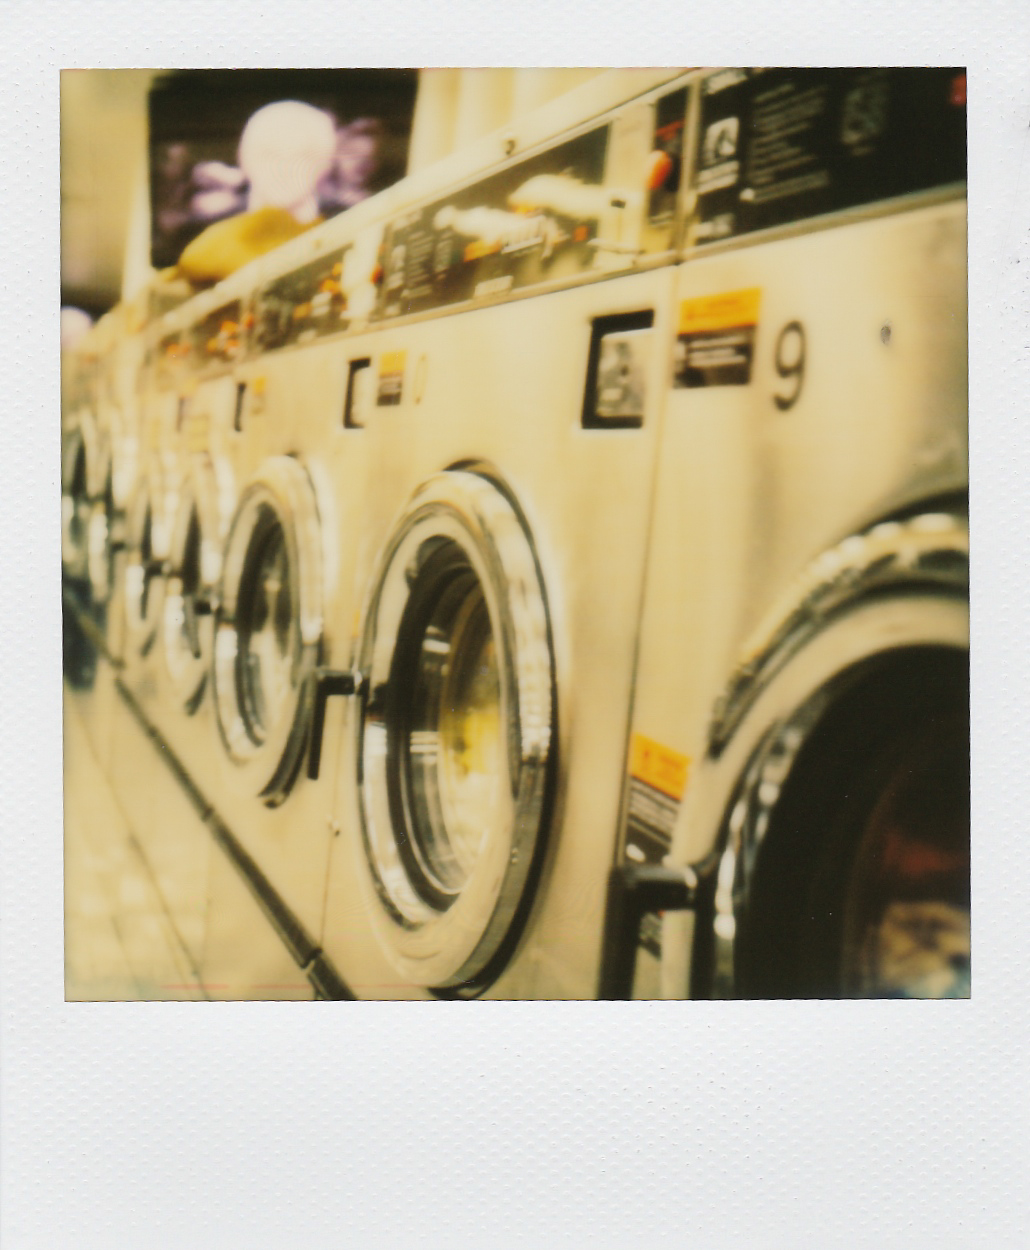 Laundromat in Astoria, Queens - Polaroid